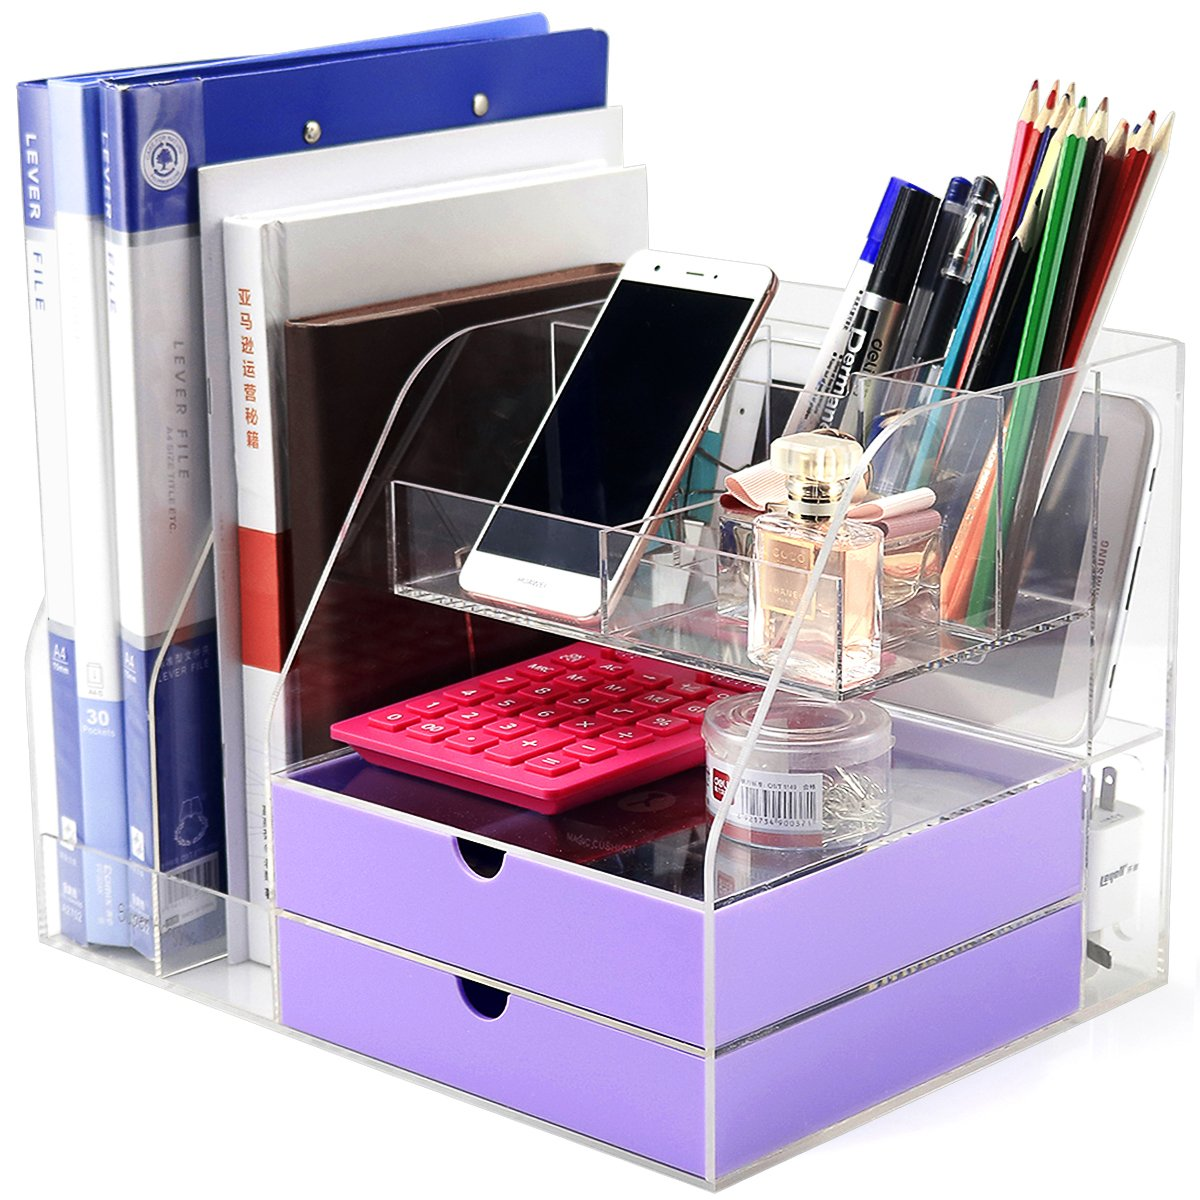 Dycacrlic Desktop Organizer For Home Office Supplies Files Pen And Desk Accessories Organization Clear